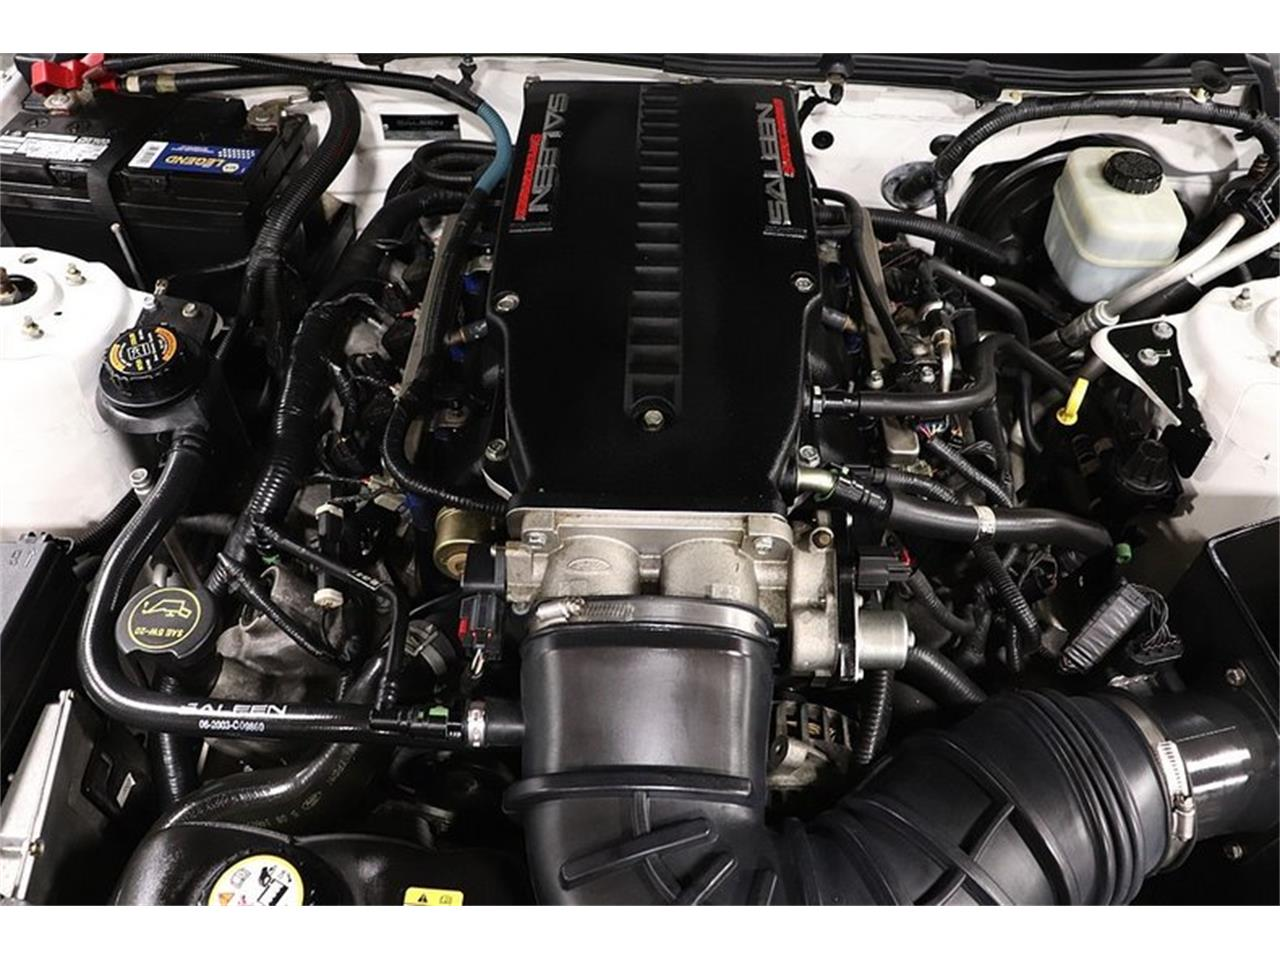 2005 Ford Mustang Engine